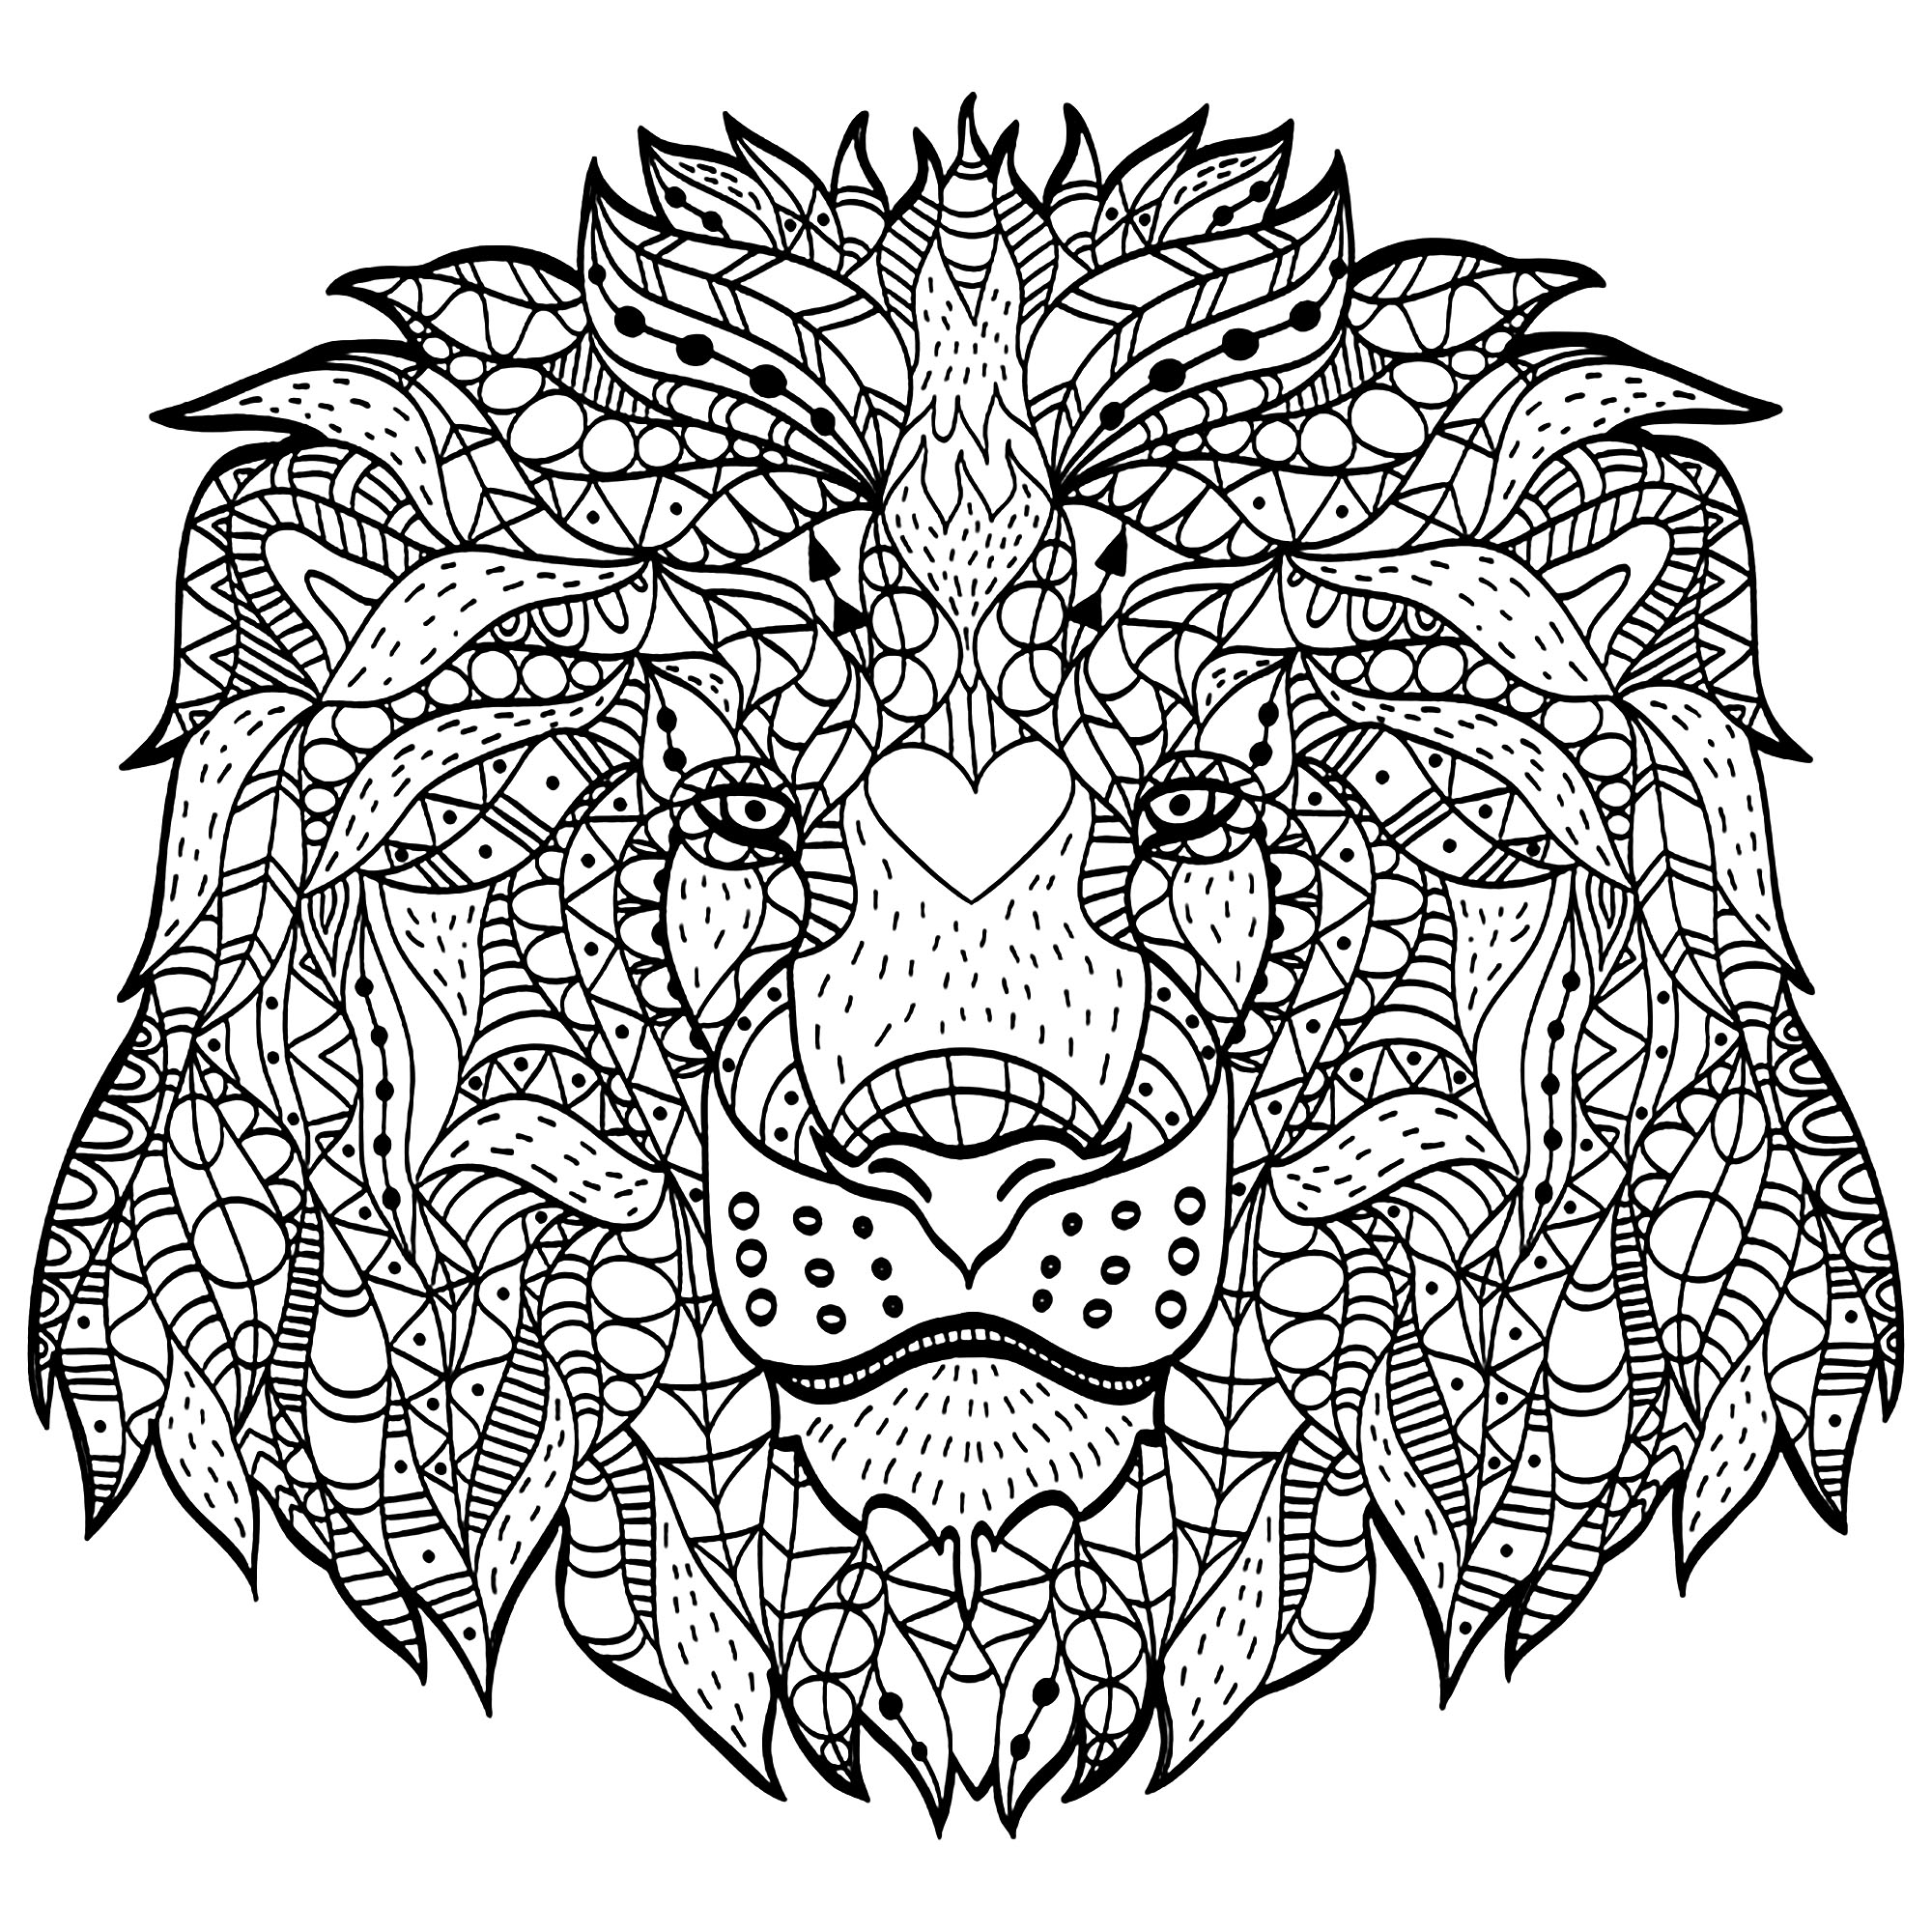 lion coloring pages free printable lion coloring pages at getdrawings free lion coloring pages